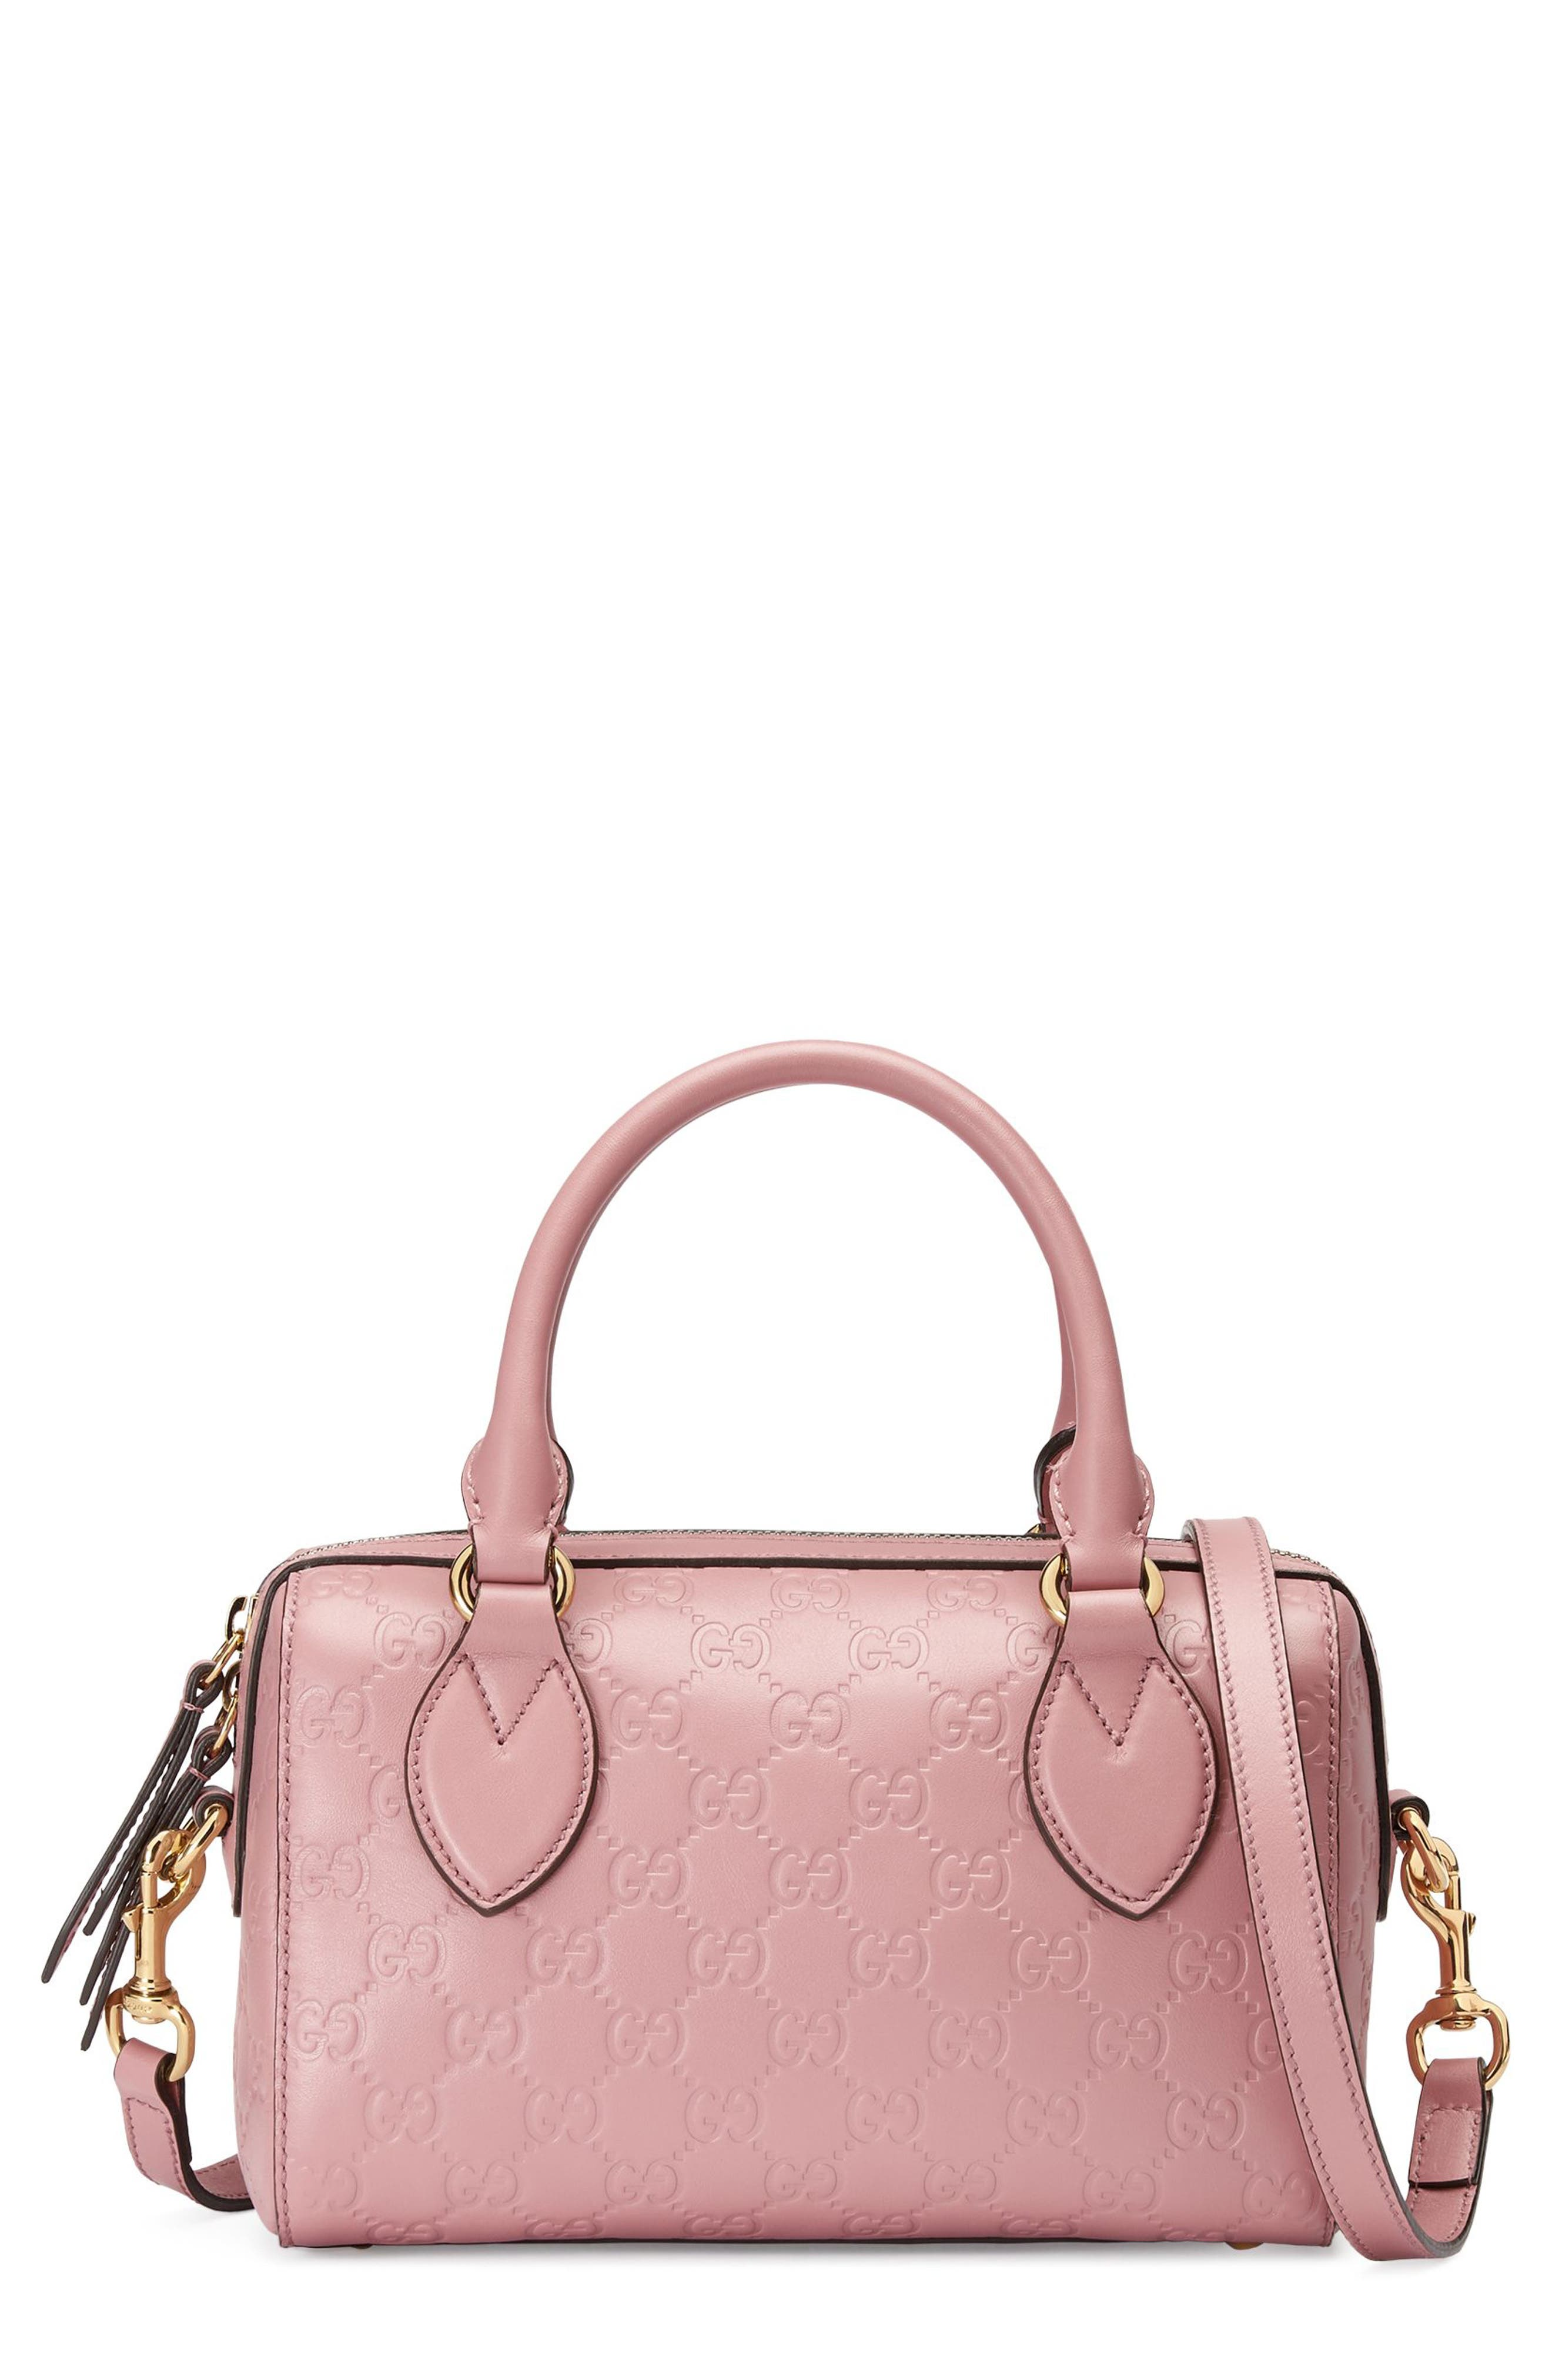 Main Image - Gucci Small Top Handle Signature Leather Satchel